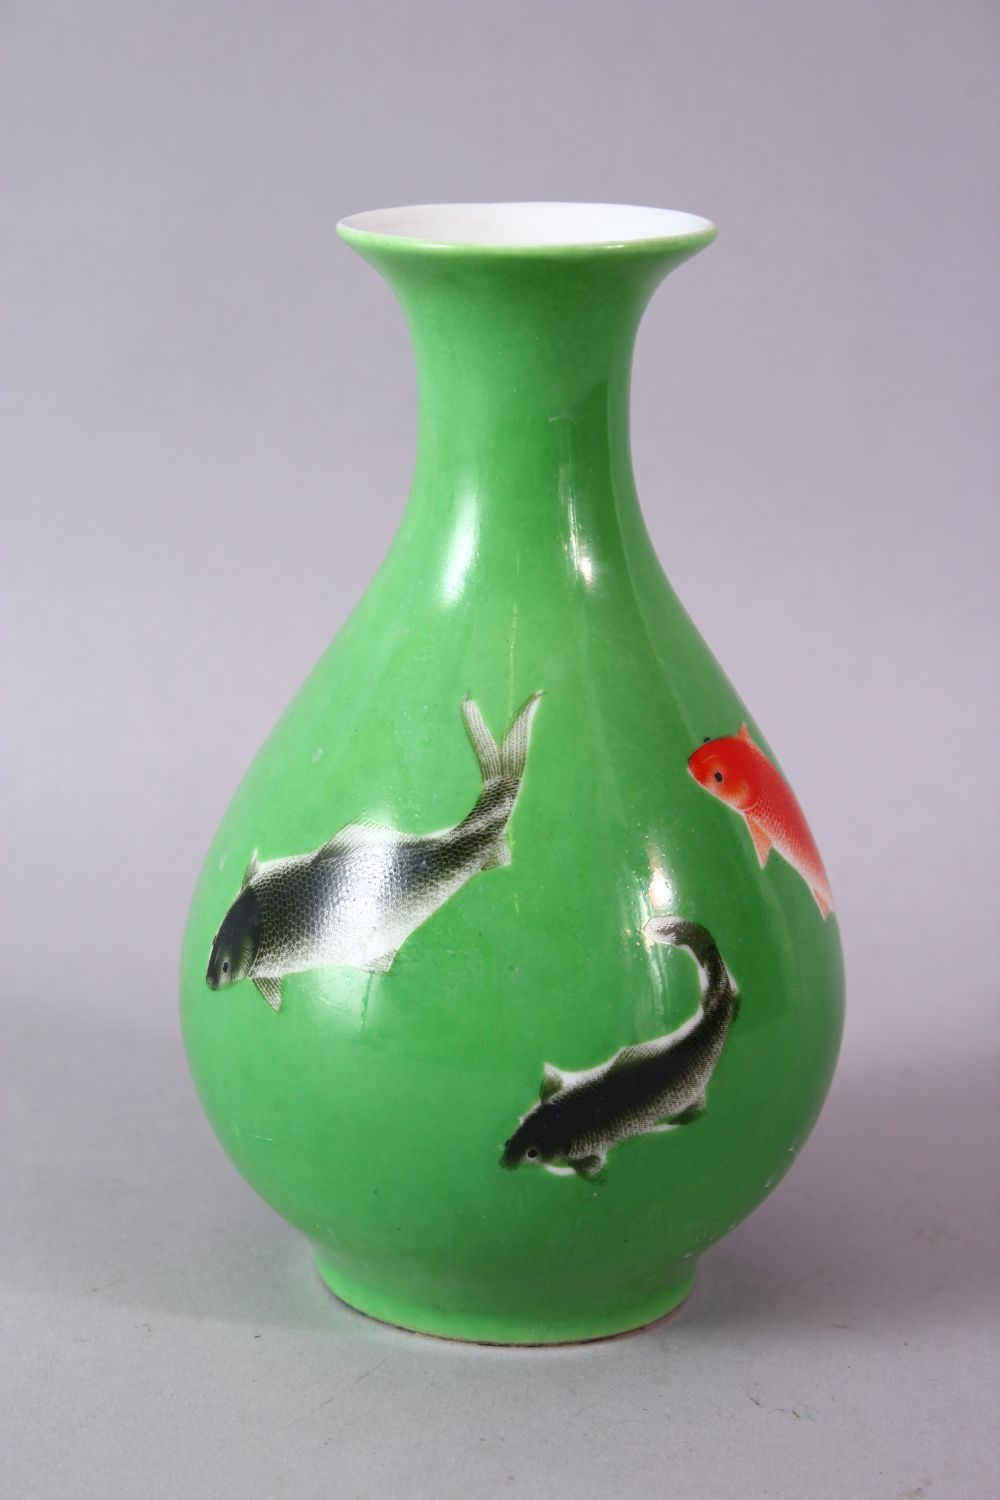 A CHINESE GREEN GLAZED VASE, painted with fish, mark in red, 15cm high. - Image 2 of 8